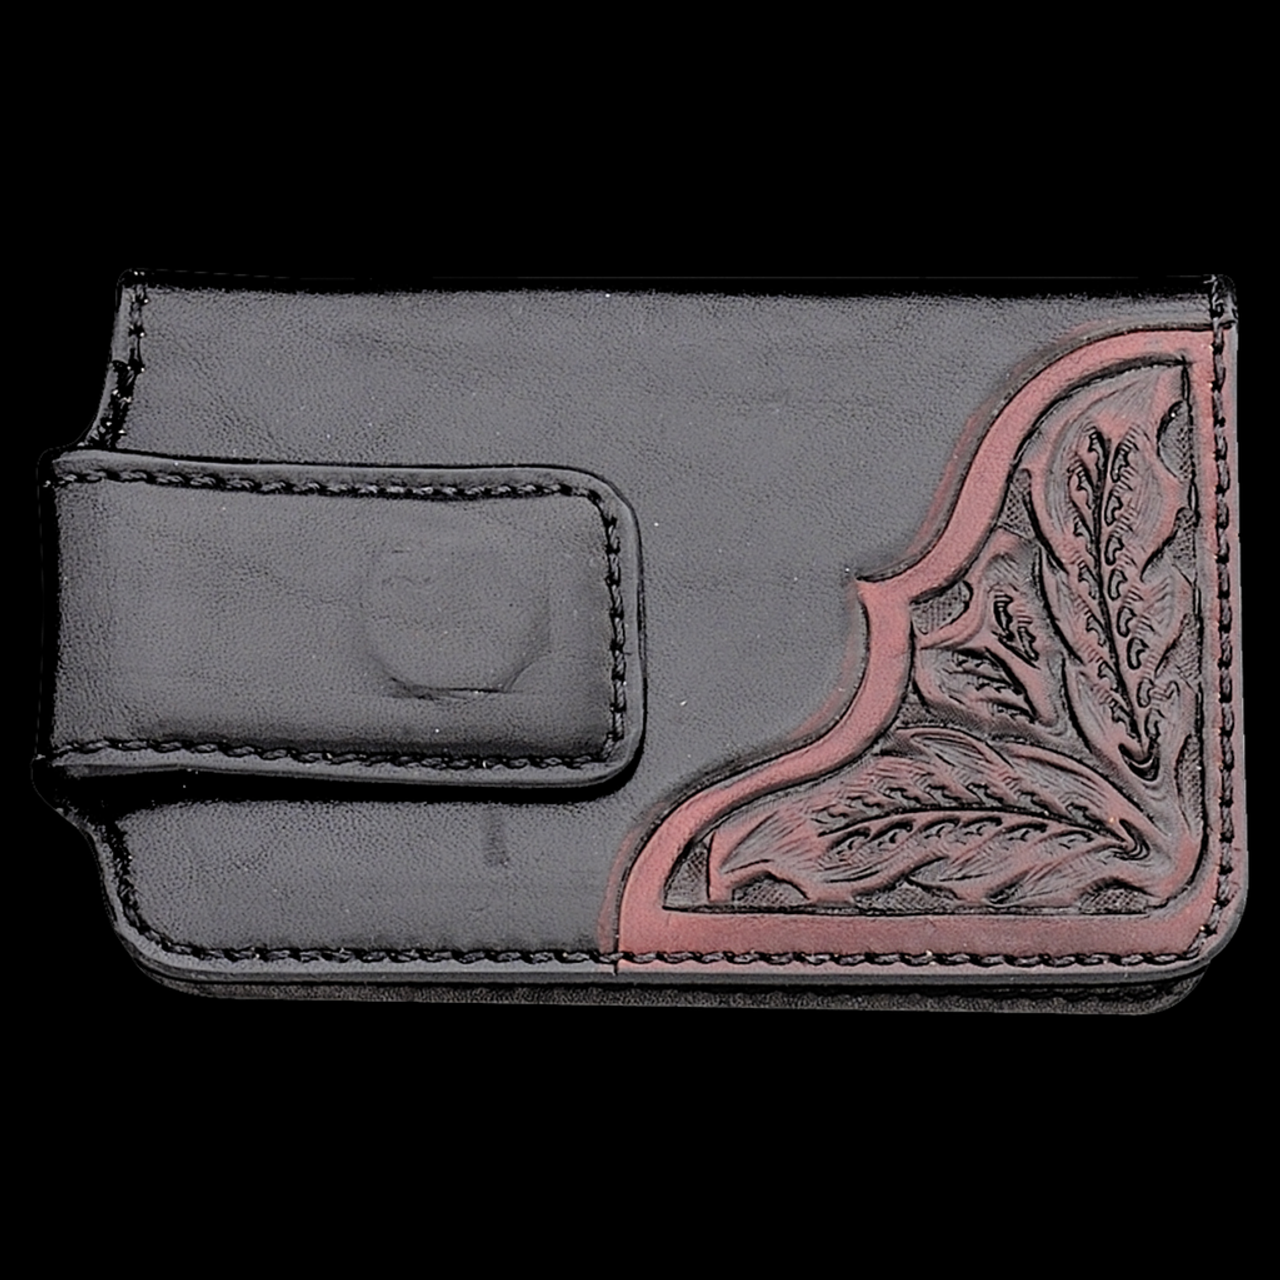 fc9c9c0df Vogt Mens Accessories - Wallets - Smooth Black Leather Wallet Clip Hand  Tooled Black Cherry Corners